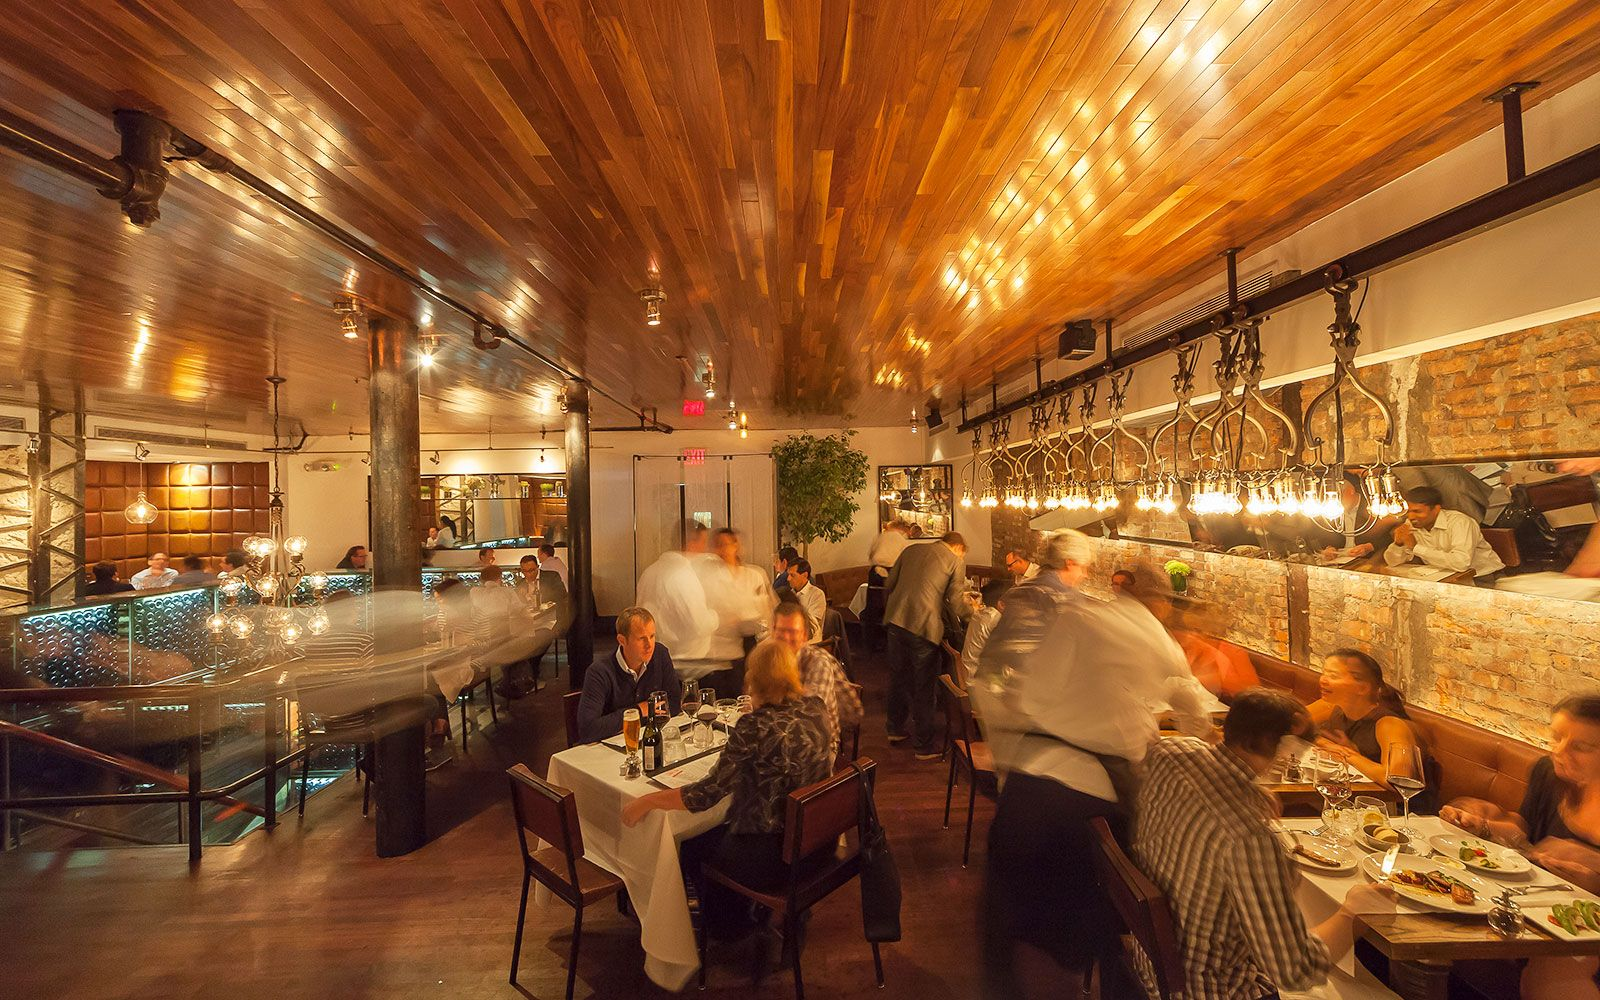 Quality Meats Fourth Wall Restaurants Great For A Group Of 6 8 For Sharing Nyc Restaurants Manhattan Restaurants New York Food